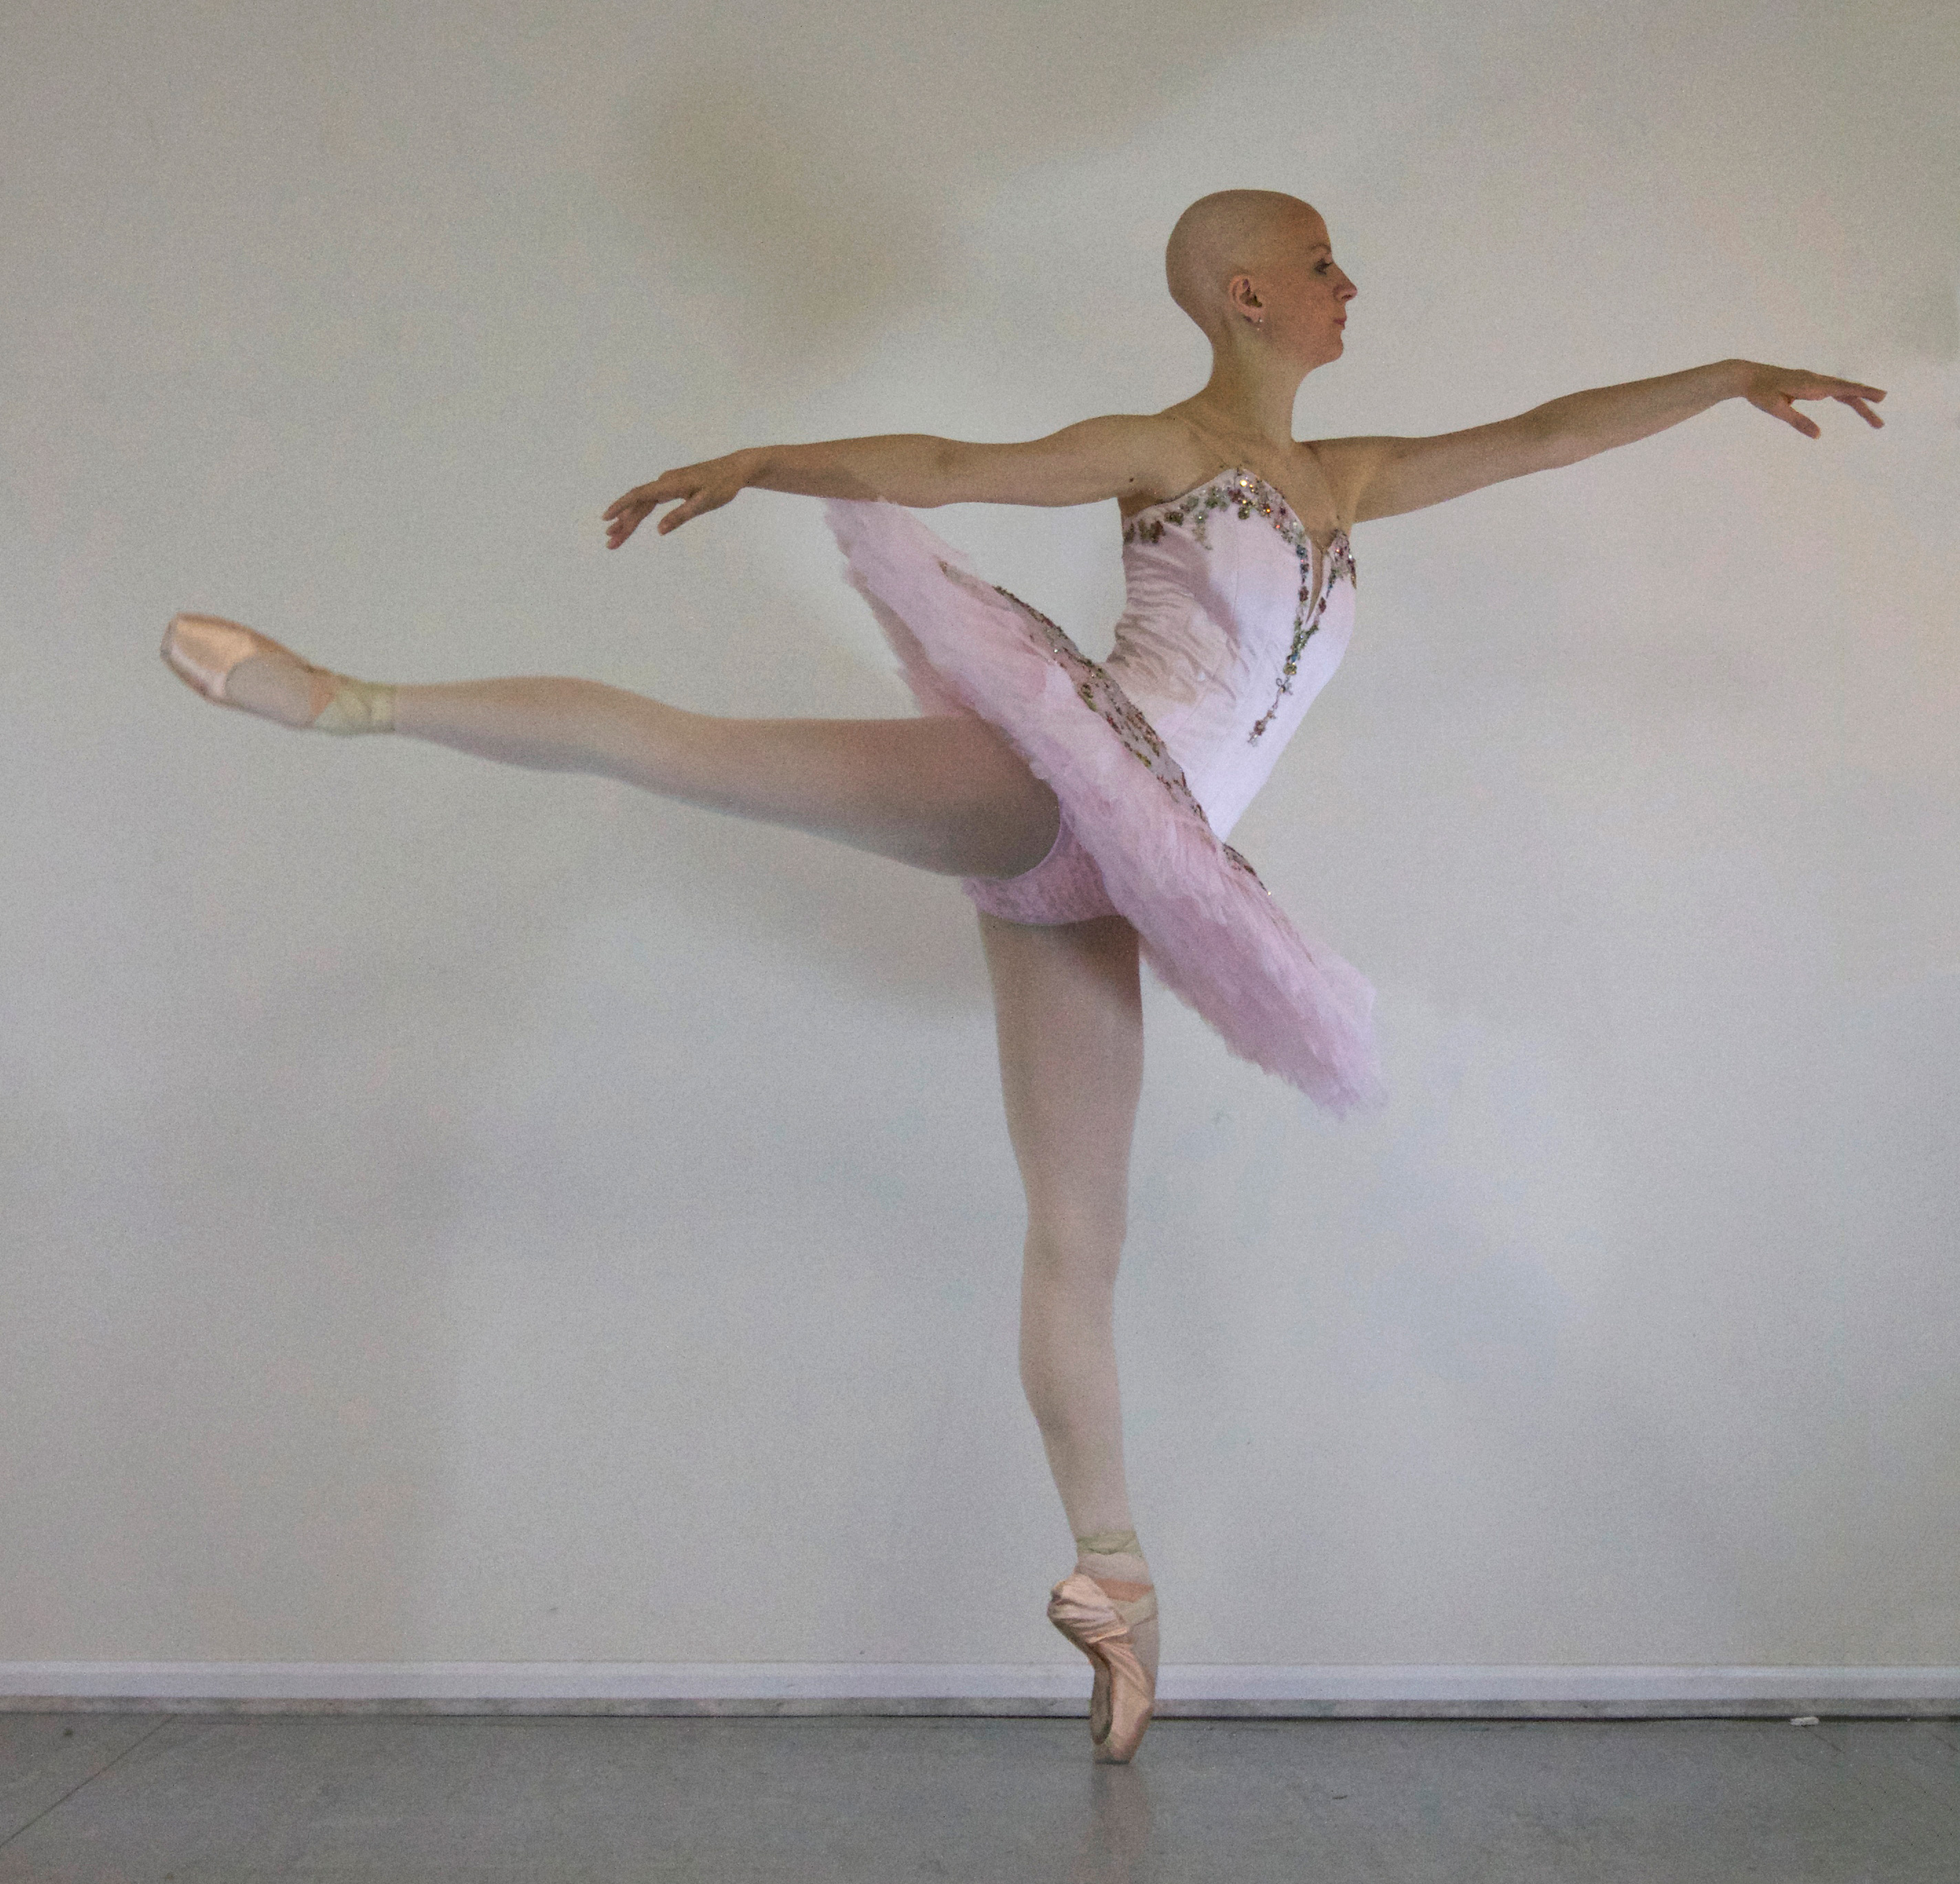 The Bald Ballerina's Turning Challenge